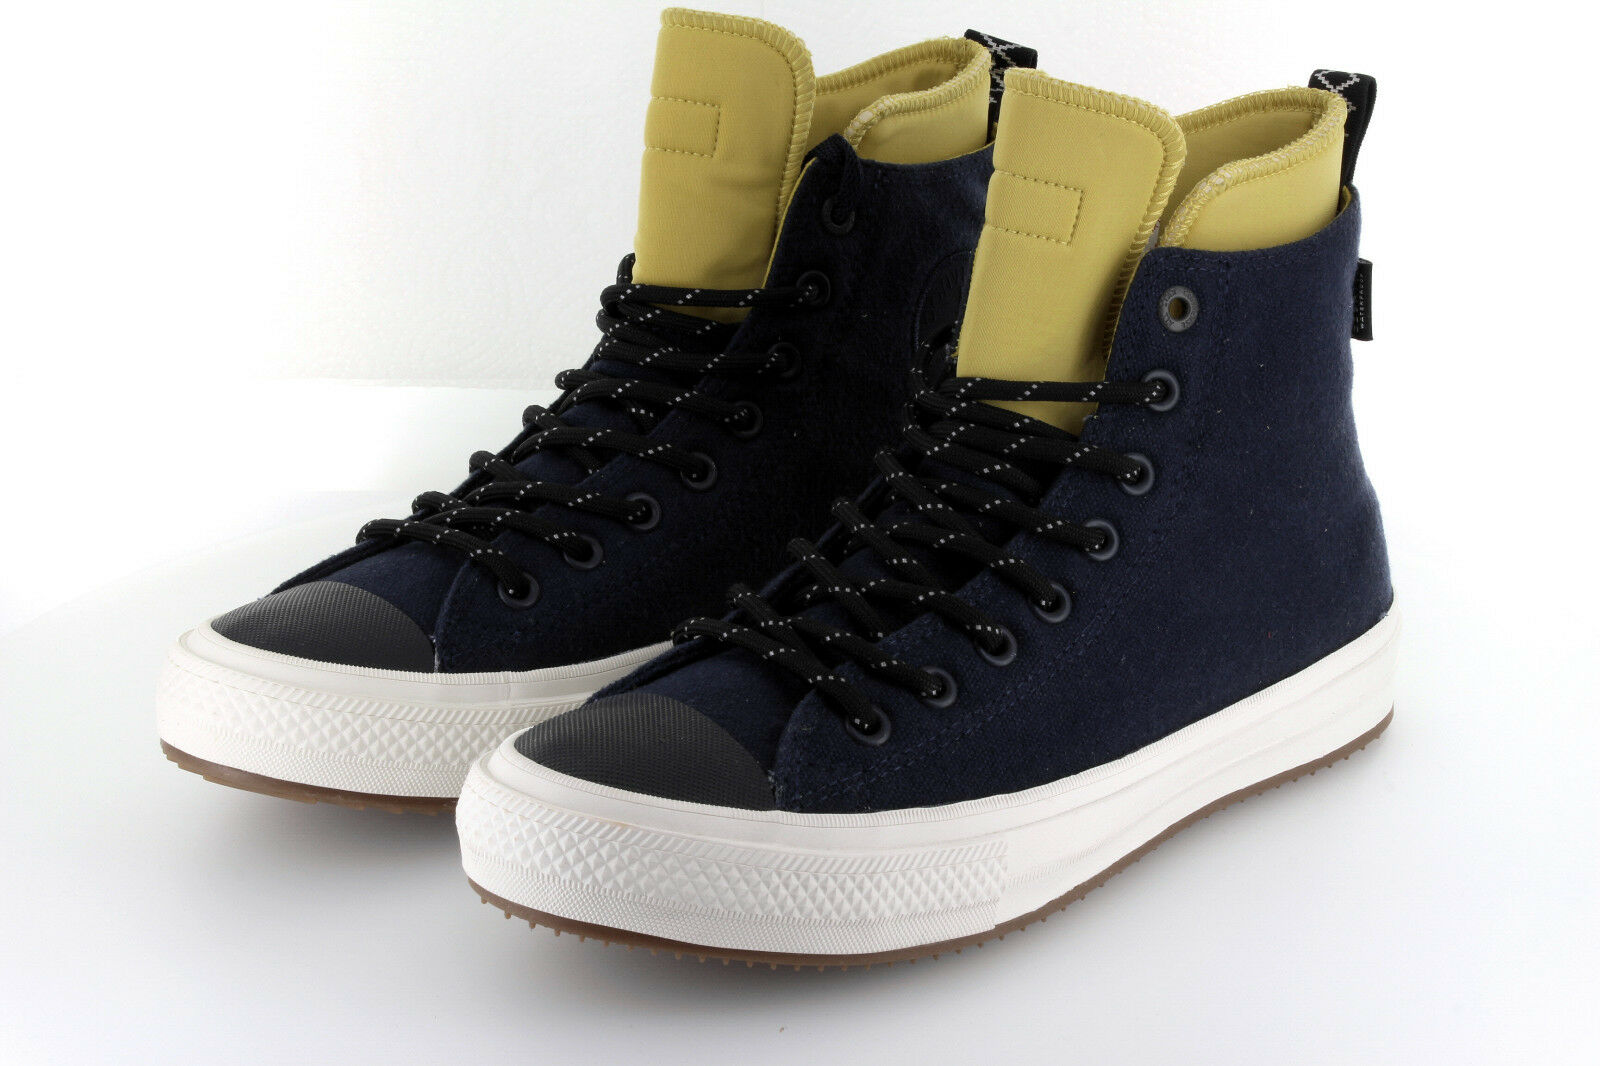 Converse Chuck Taylor AS Hi Counter Climate Waterproof Textile bluee 42,5  43 US9